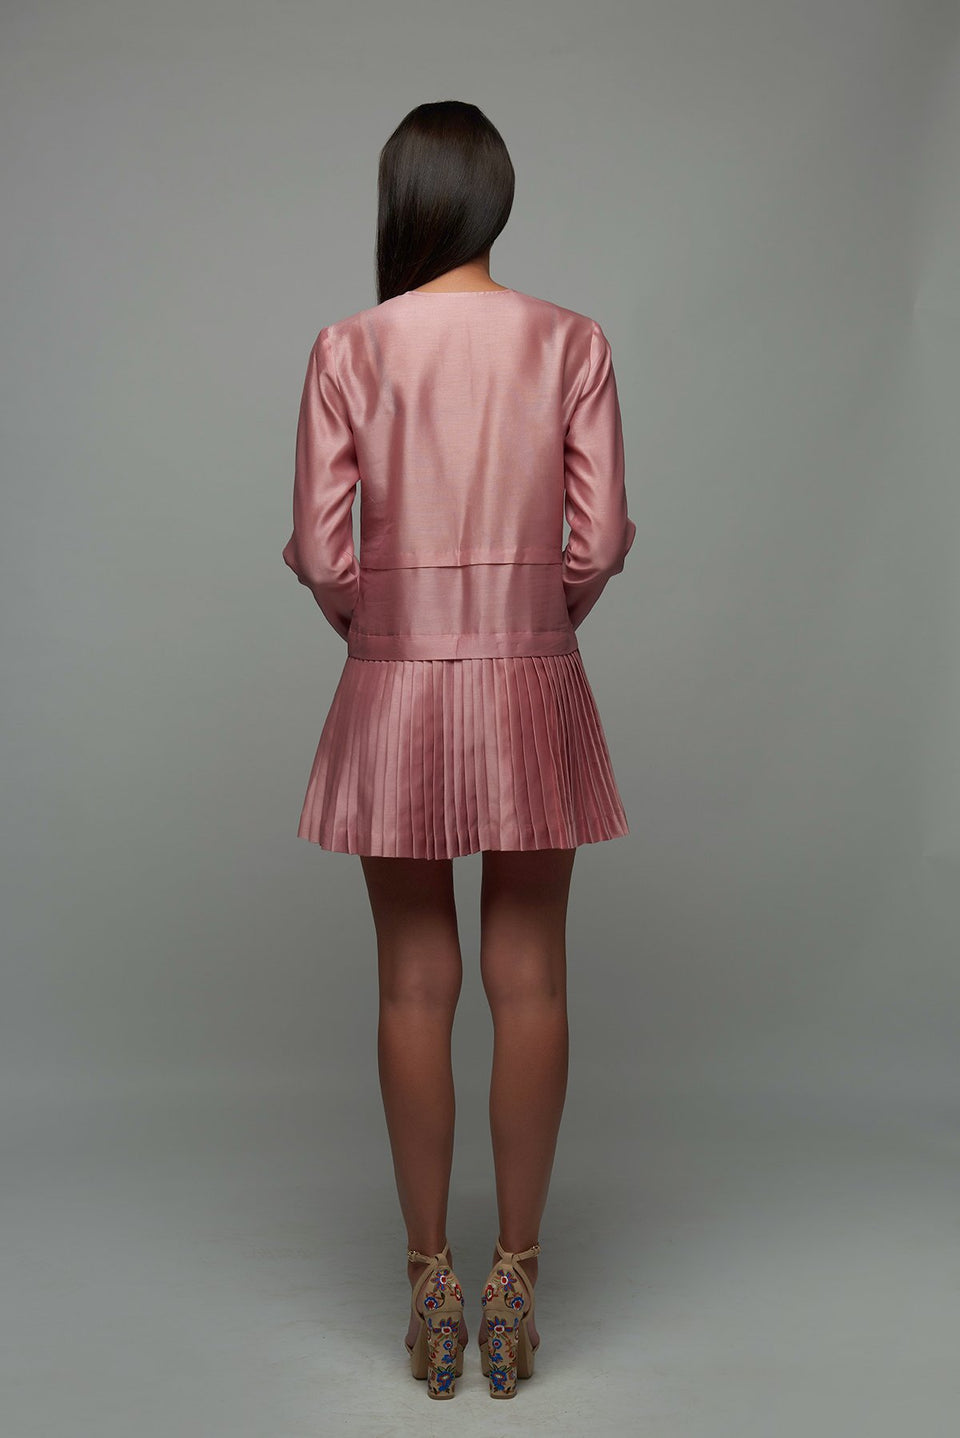 The Elysium Dress in Soft Rose